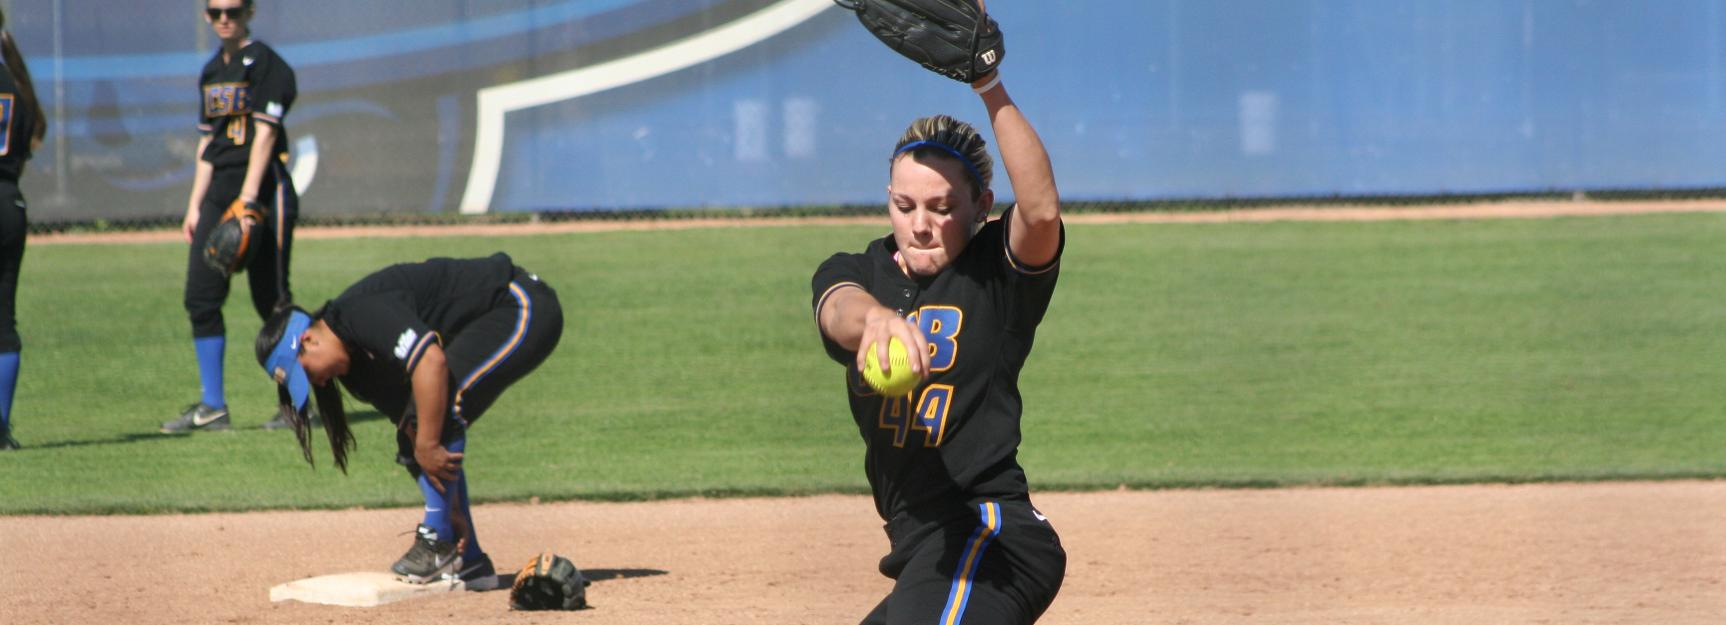 UCSB Fall Short in High Scoring Bout with Fullerton